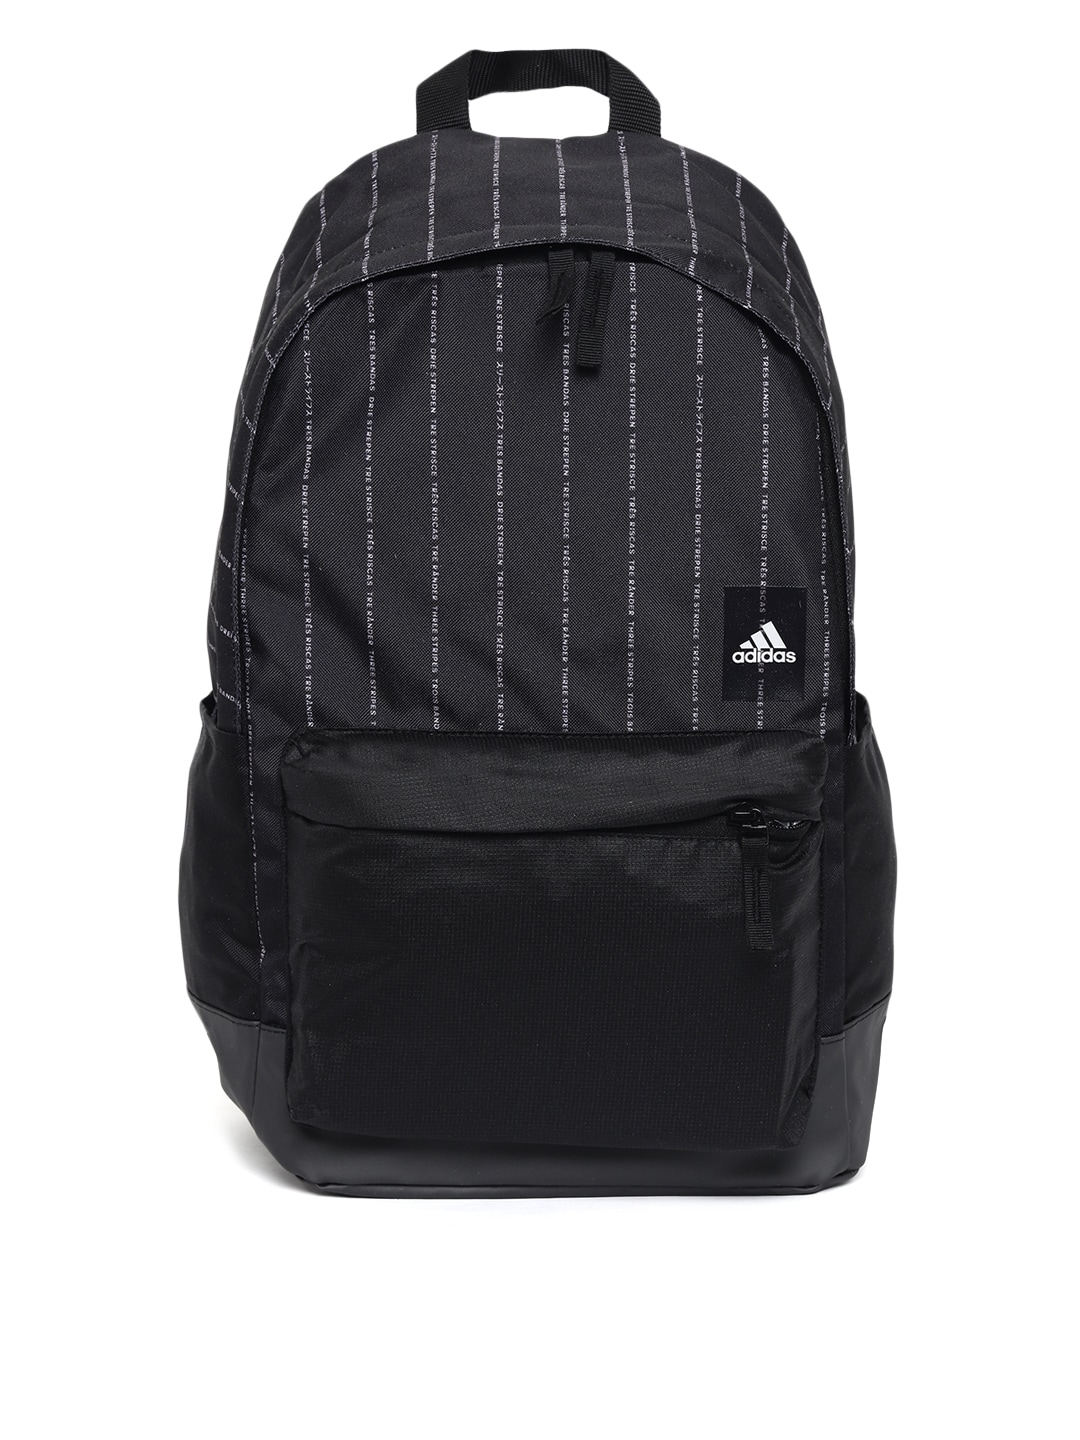 Mens Bags   Backpacks - Buy Bags   Backpacks for Men Online 0d439eacf1ac8